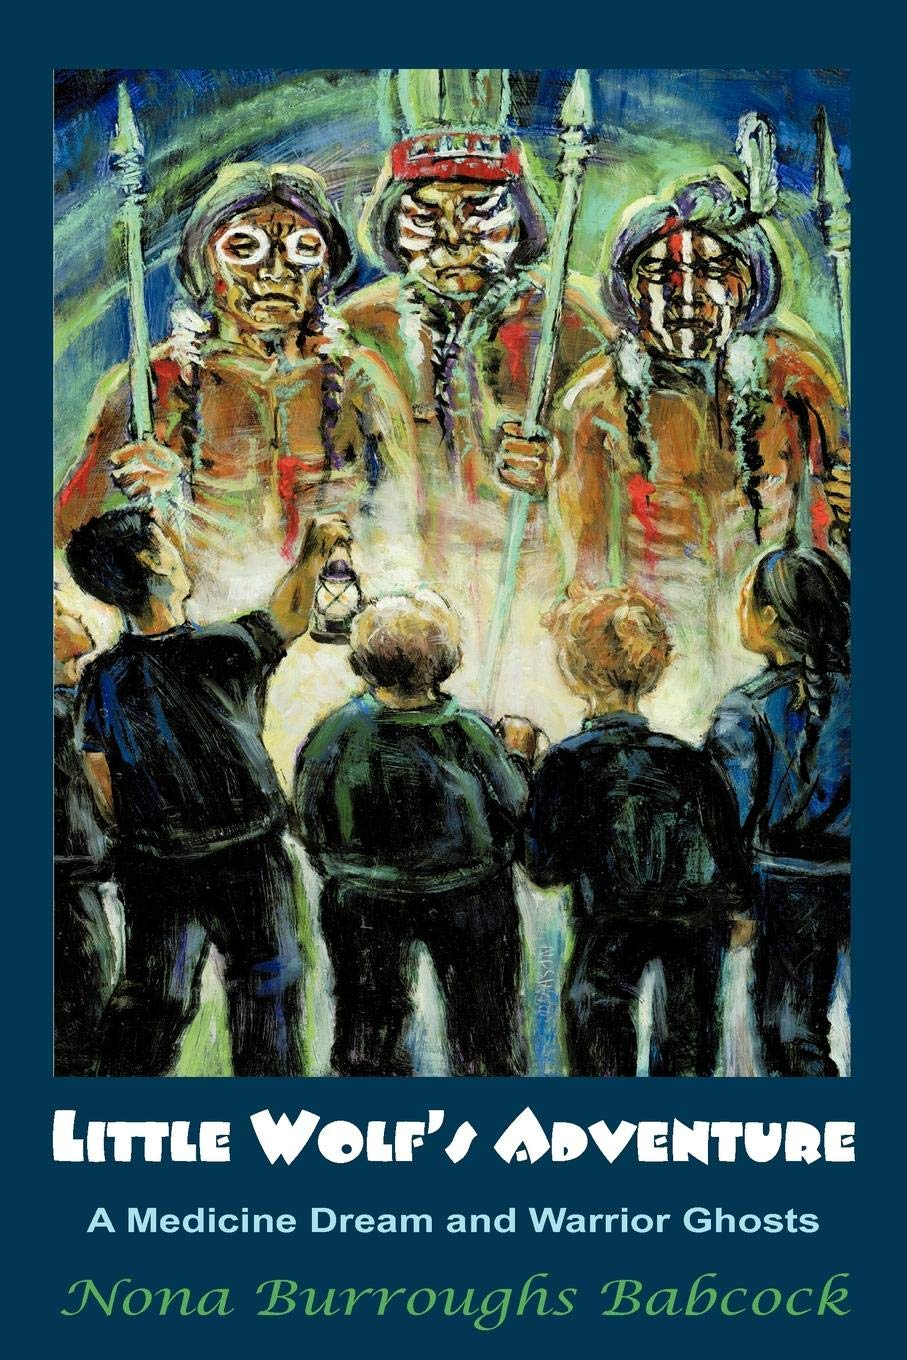 Buy Little Wolf's Adventure: A Medicine Dream and Warrior